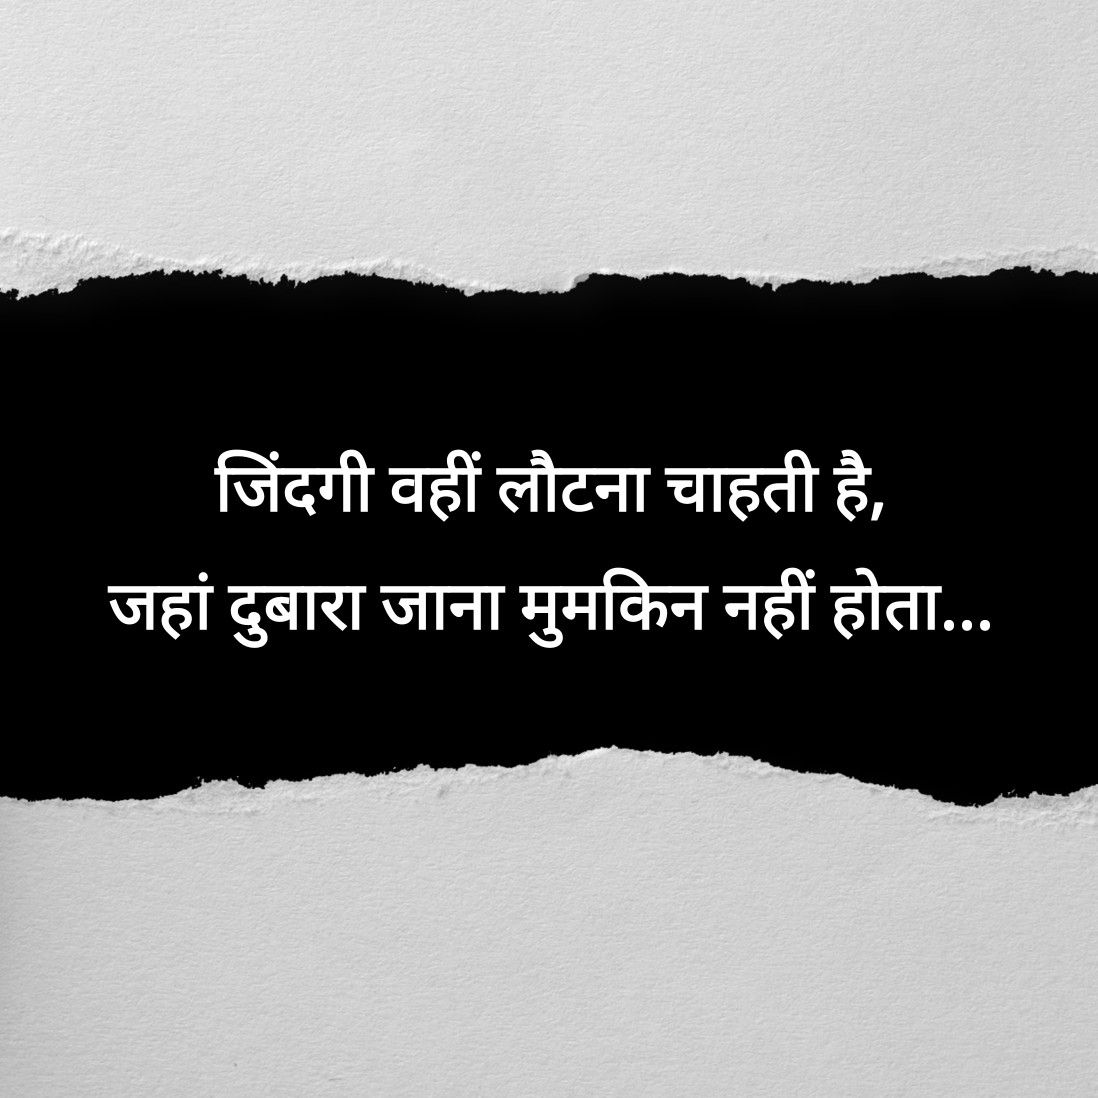 lines citater जिंदगी #hindi #words #lines #story #short | KUCH ANKAHA lines citater